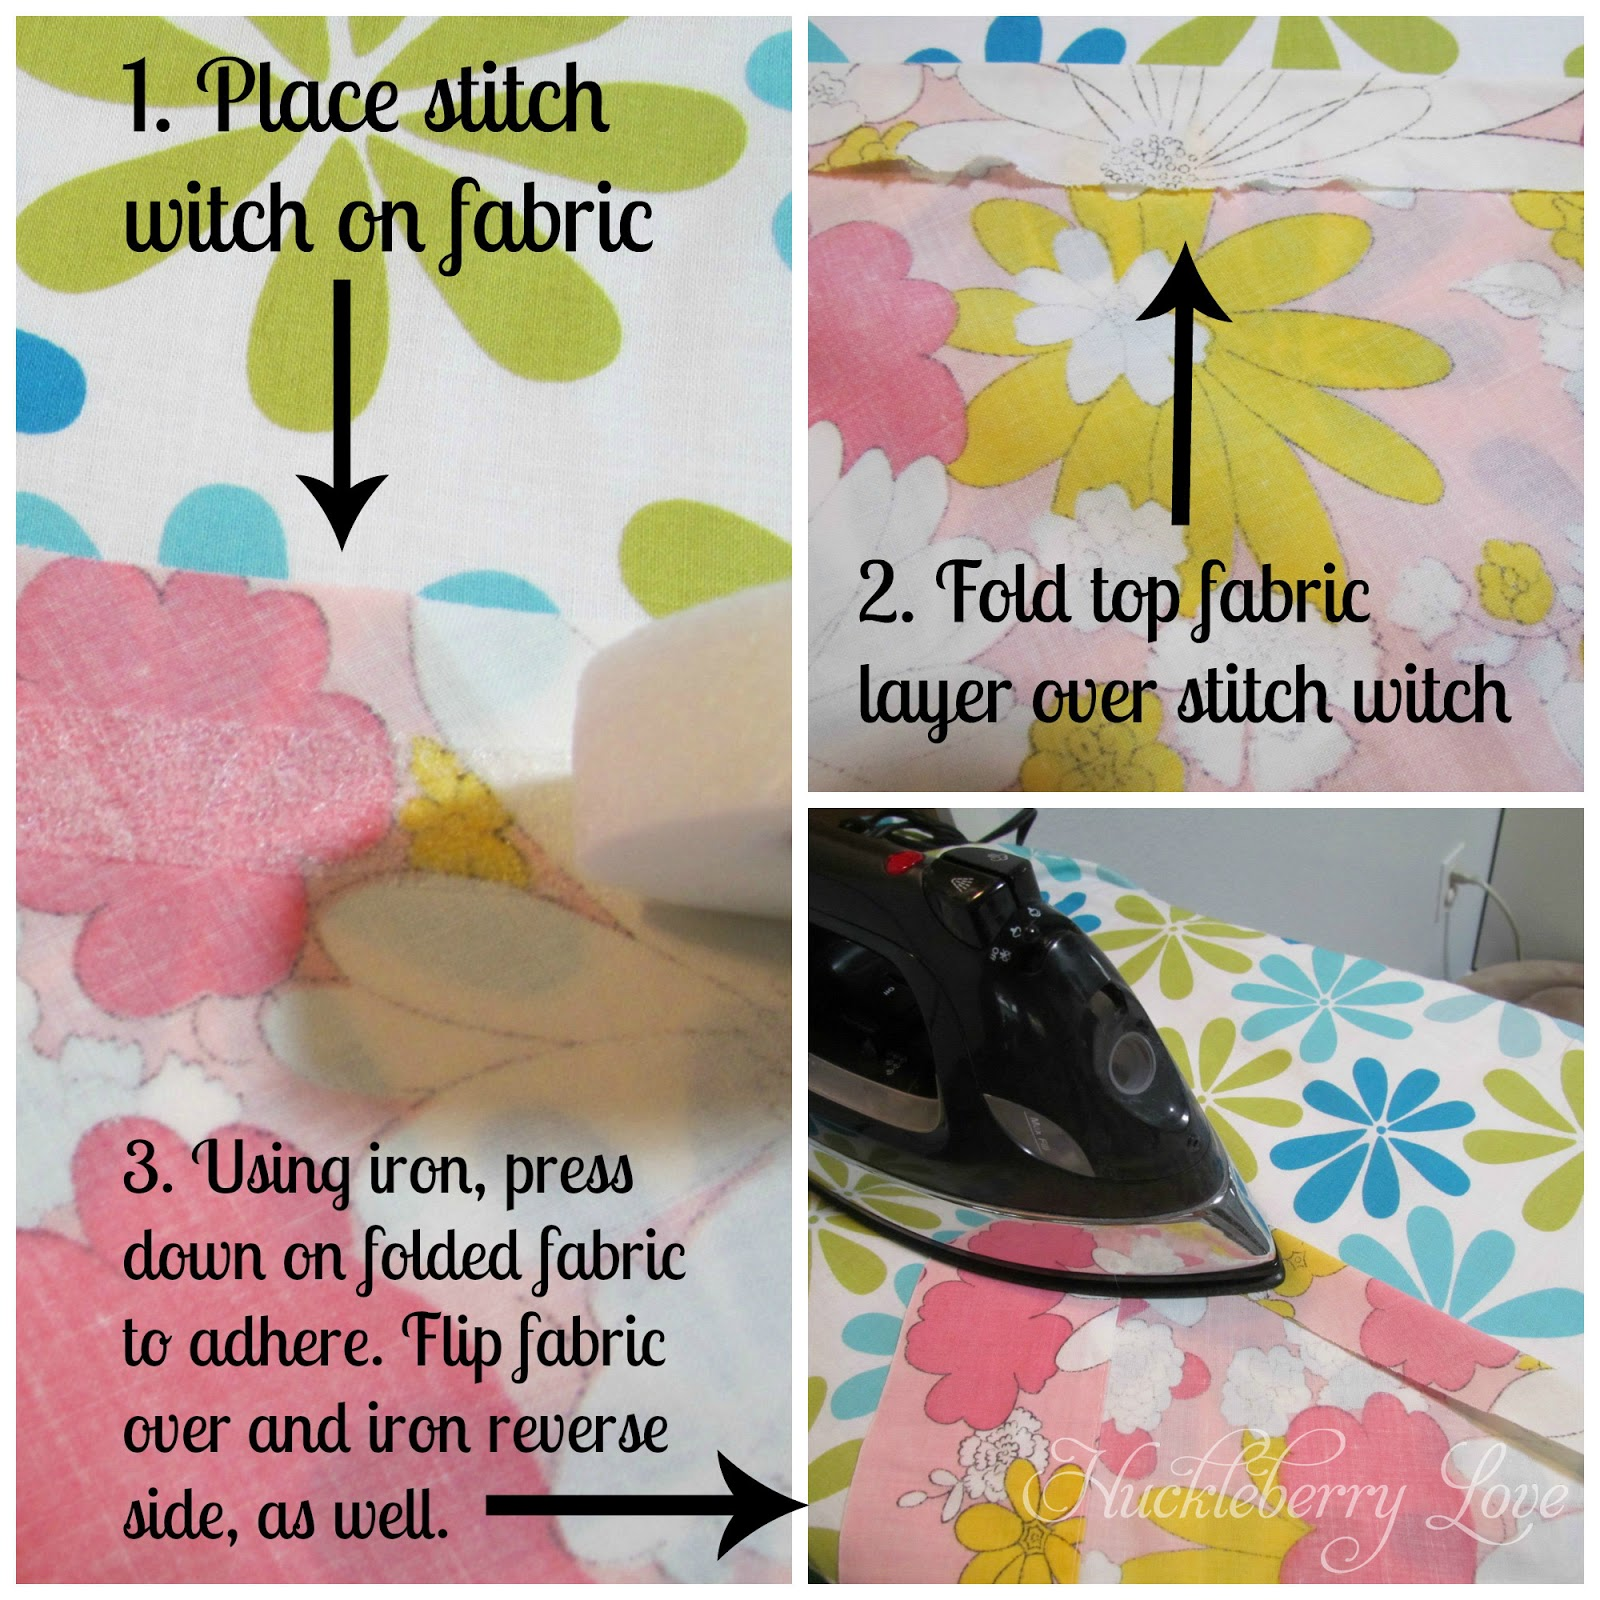 How to hump a pillow step by step